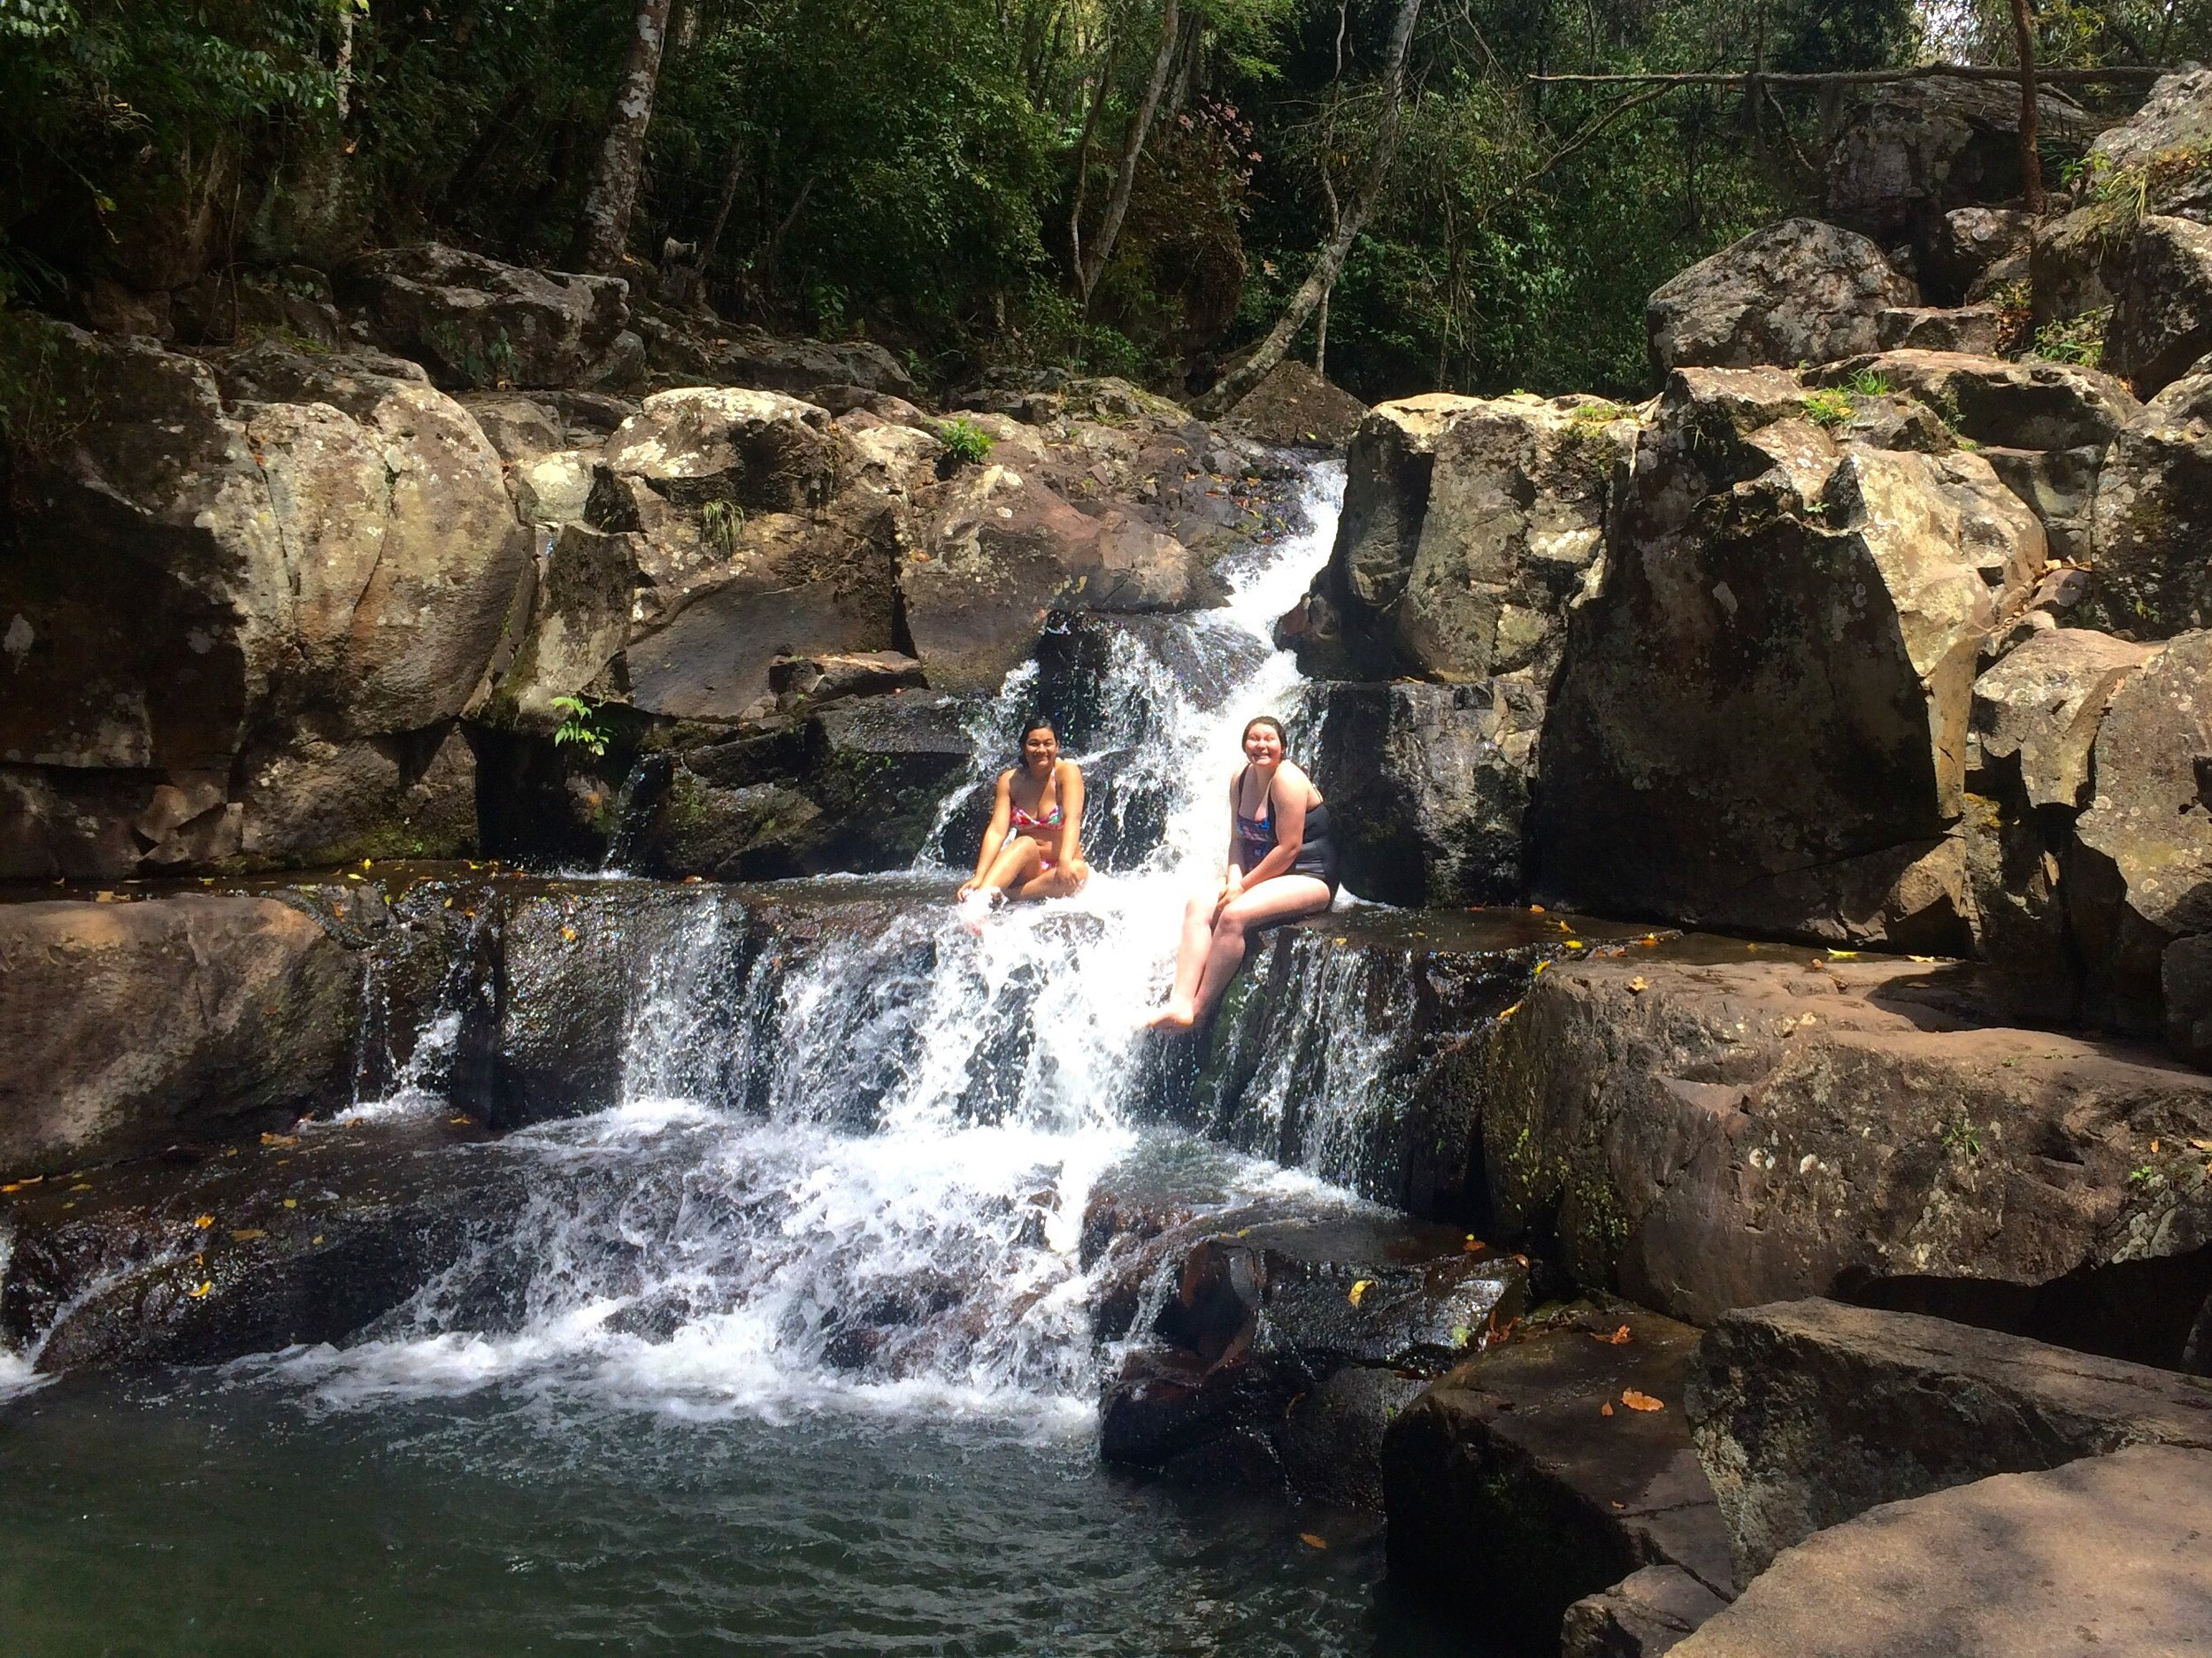 Swimming in a waterfall for the first time!